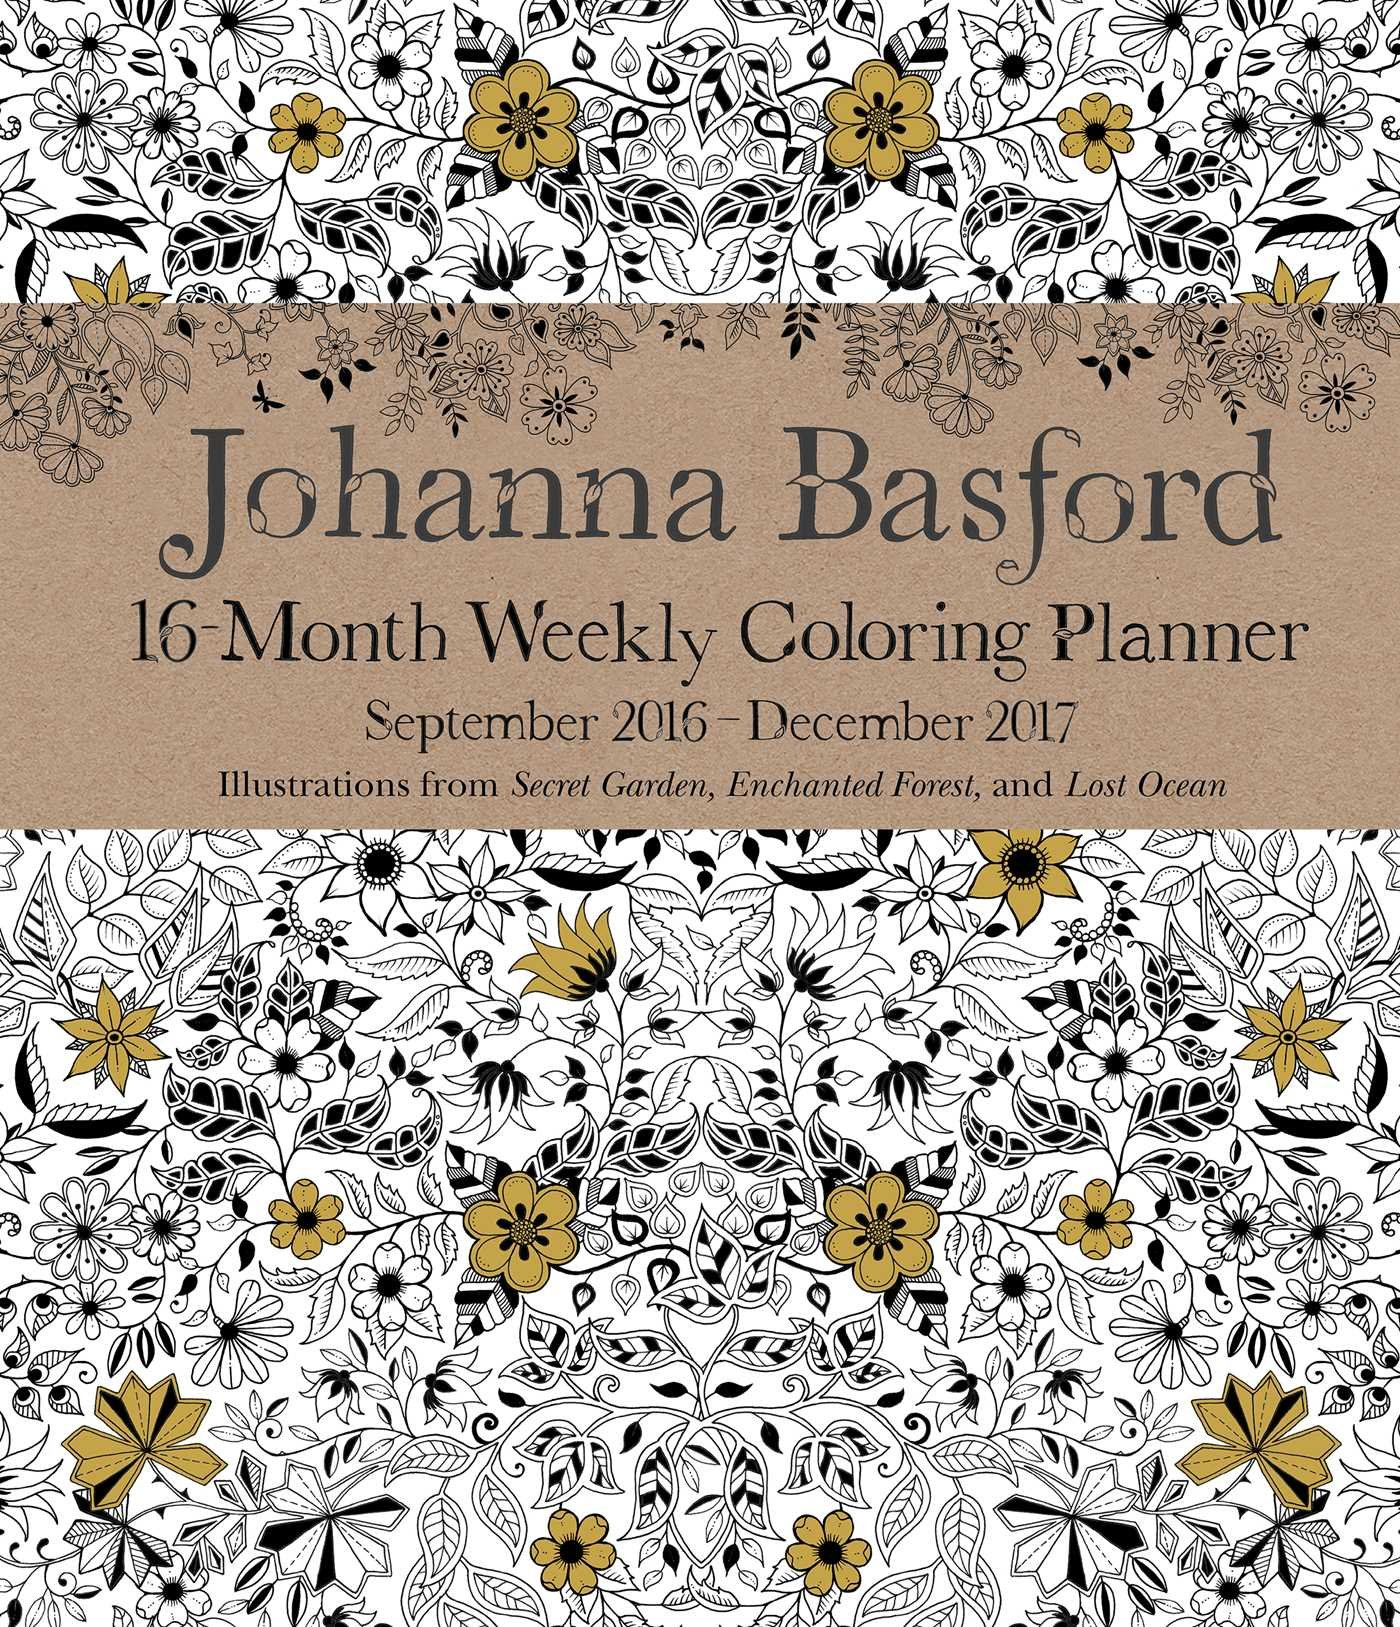 johanna basford 2016 2017 16 month coloring weekly planner calendar